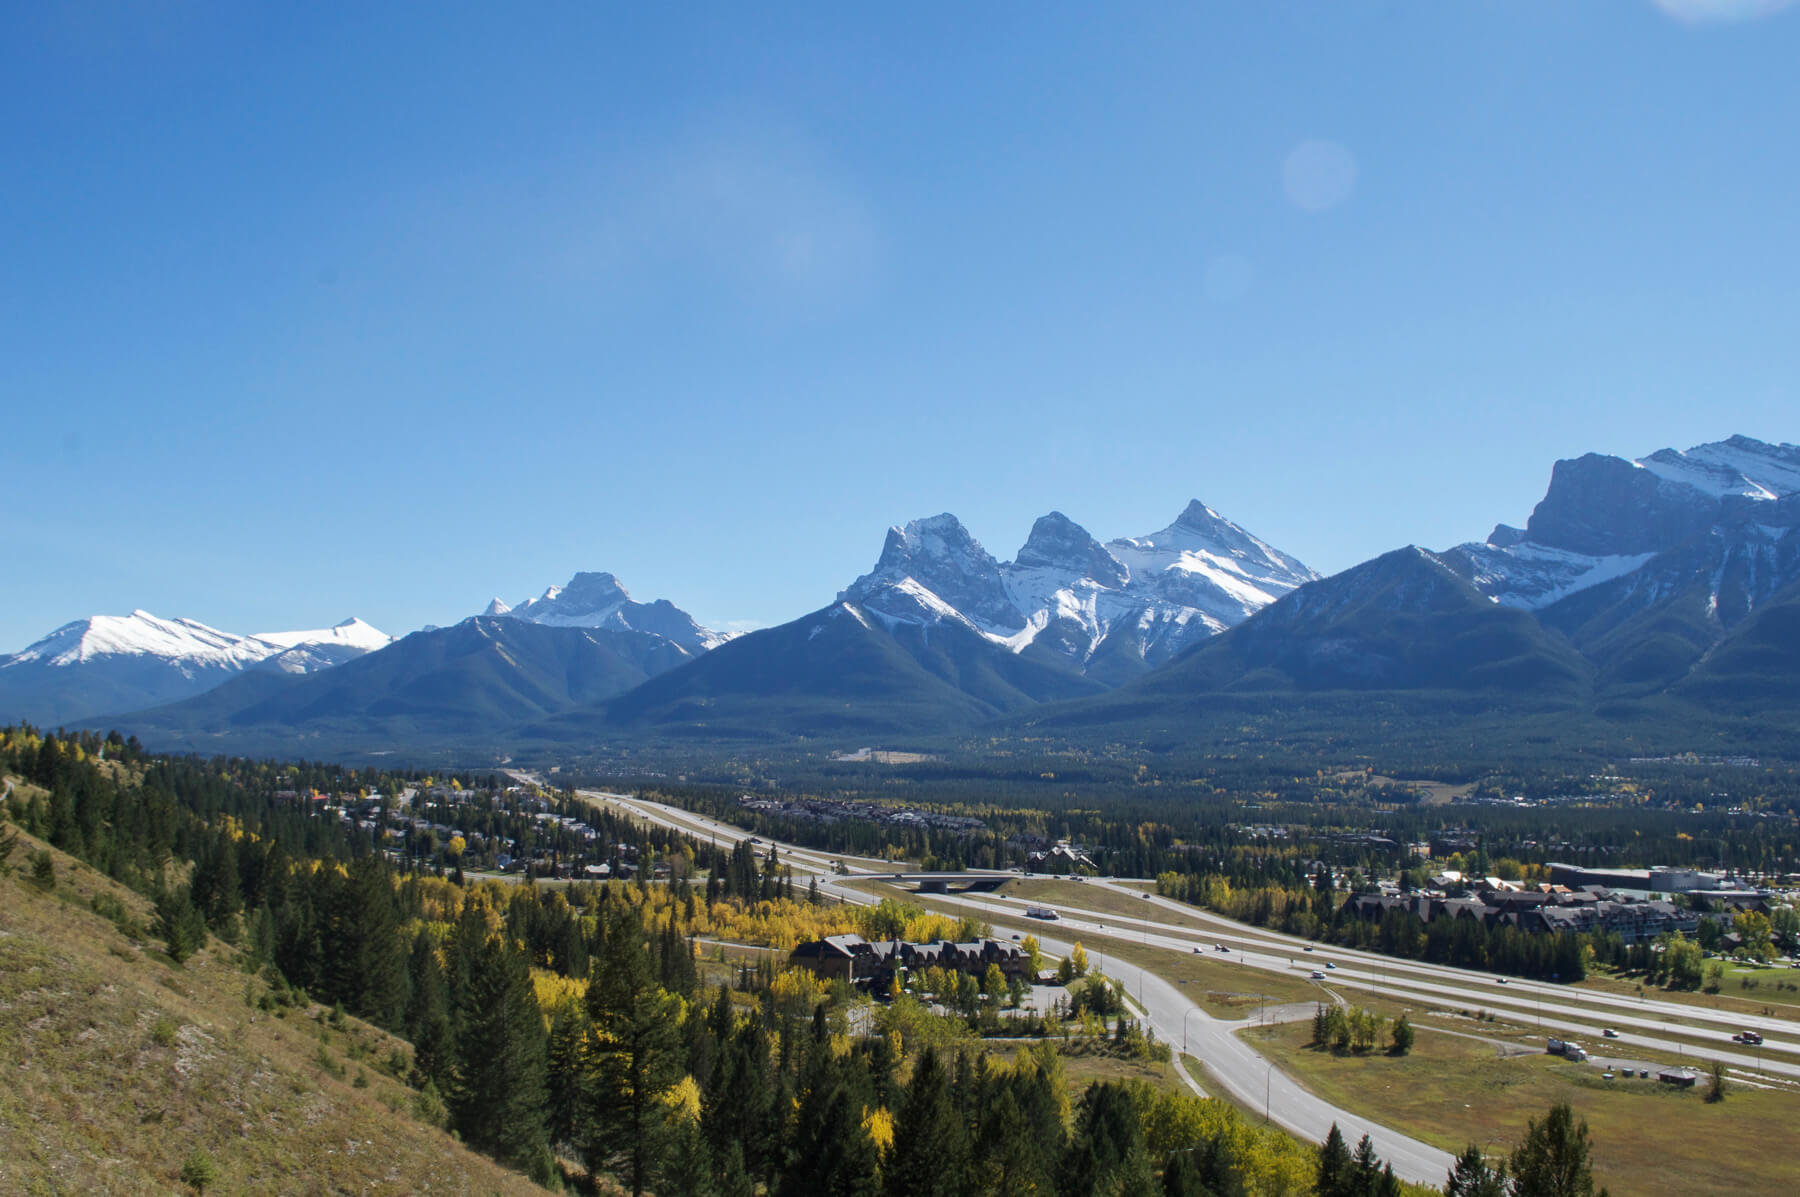 CANMORE OR BANFF?